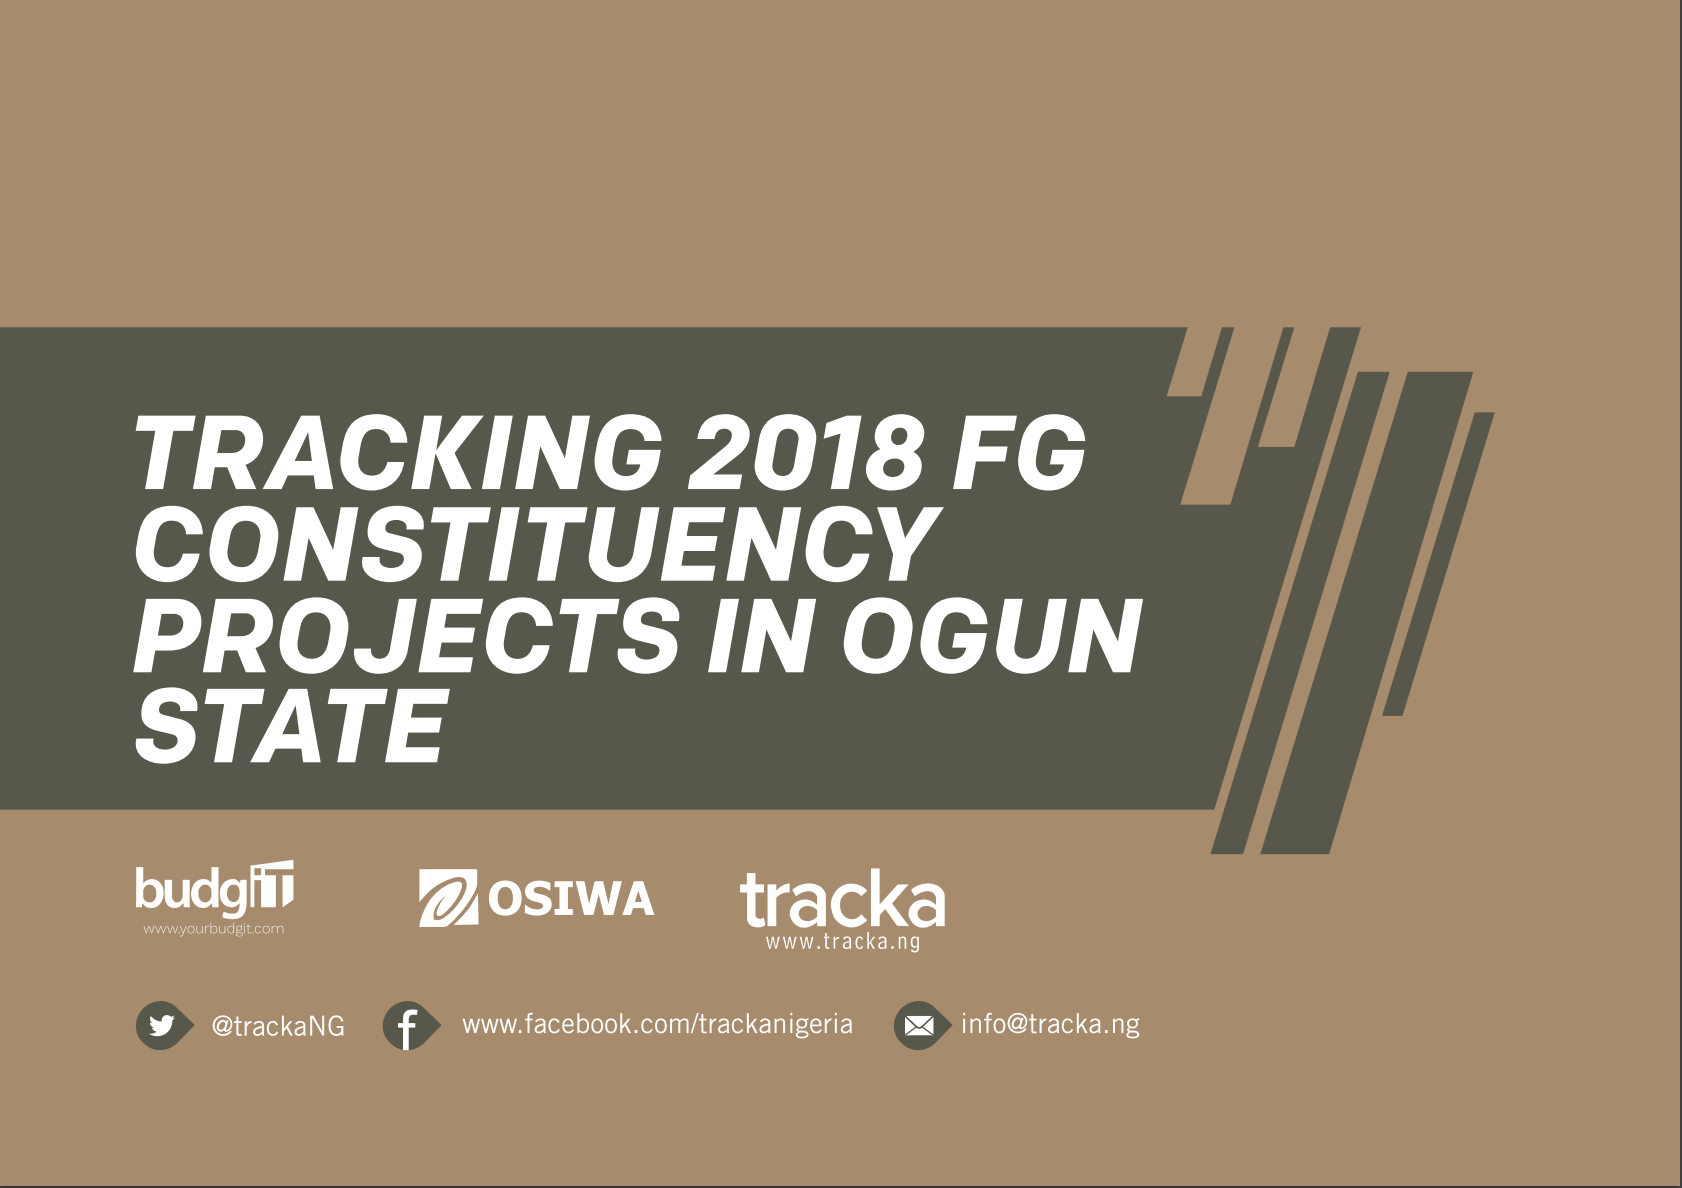 2018 FG Constituency Projects in Ogun State